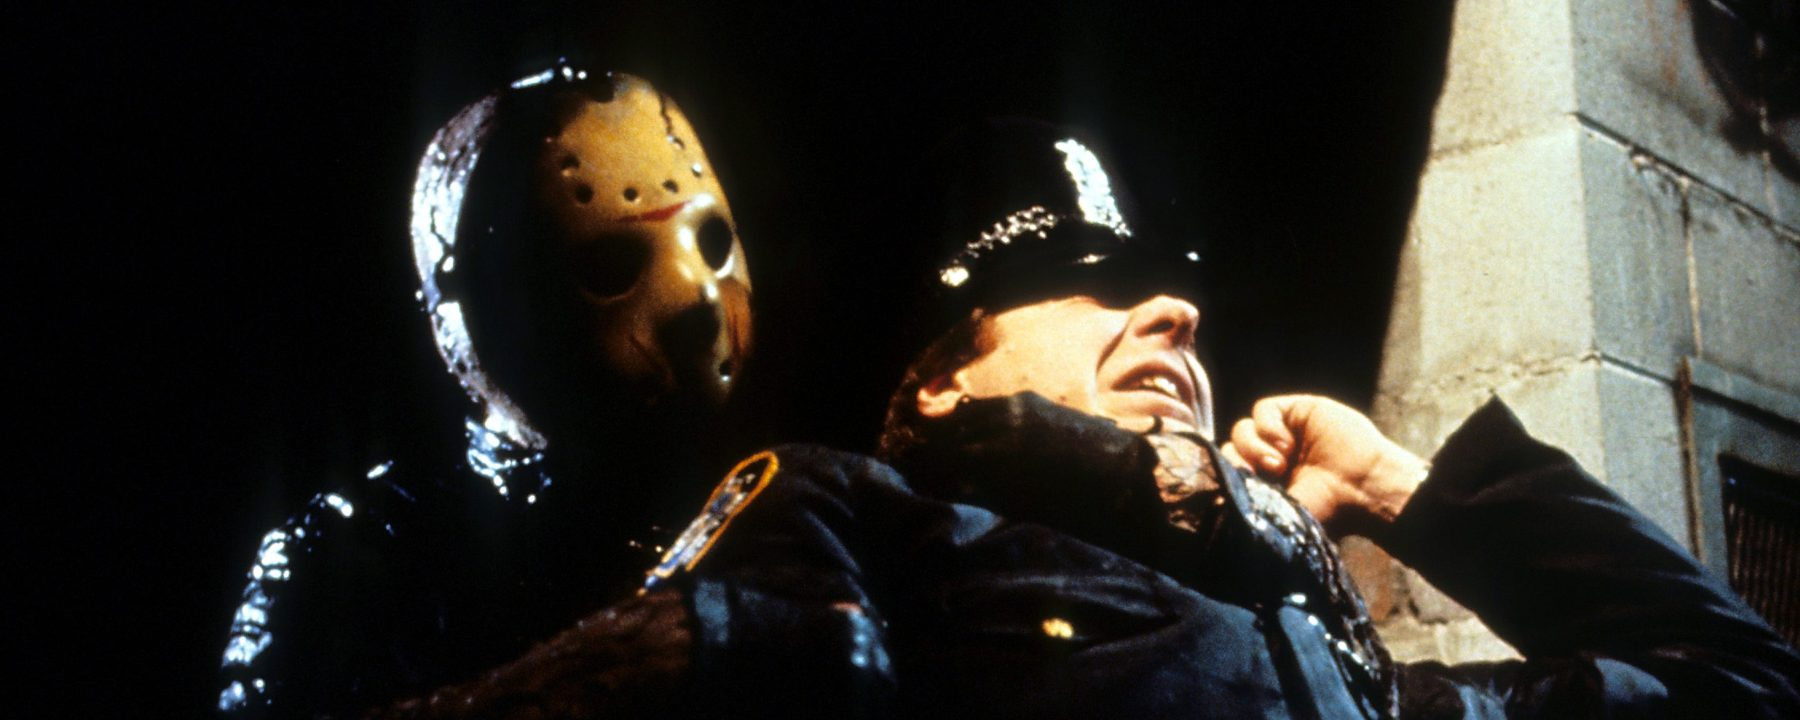 Jason grabs cop in a scene from the film 'Friday The 13th Part VIII: Jason Takes Manhattan', 1989. (Photo by Paramount/Getty Images)